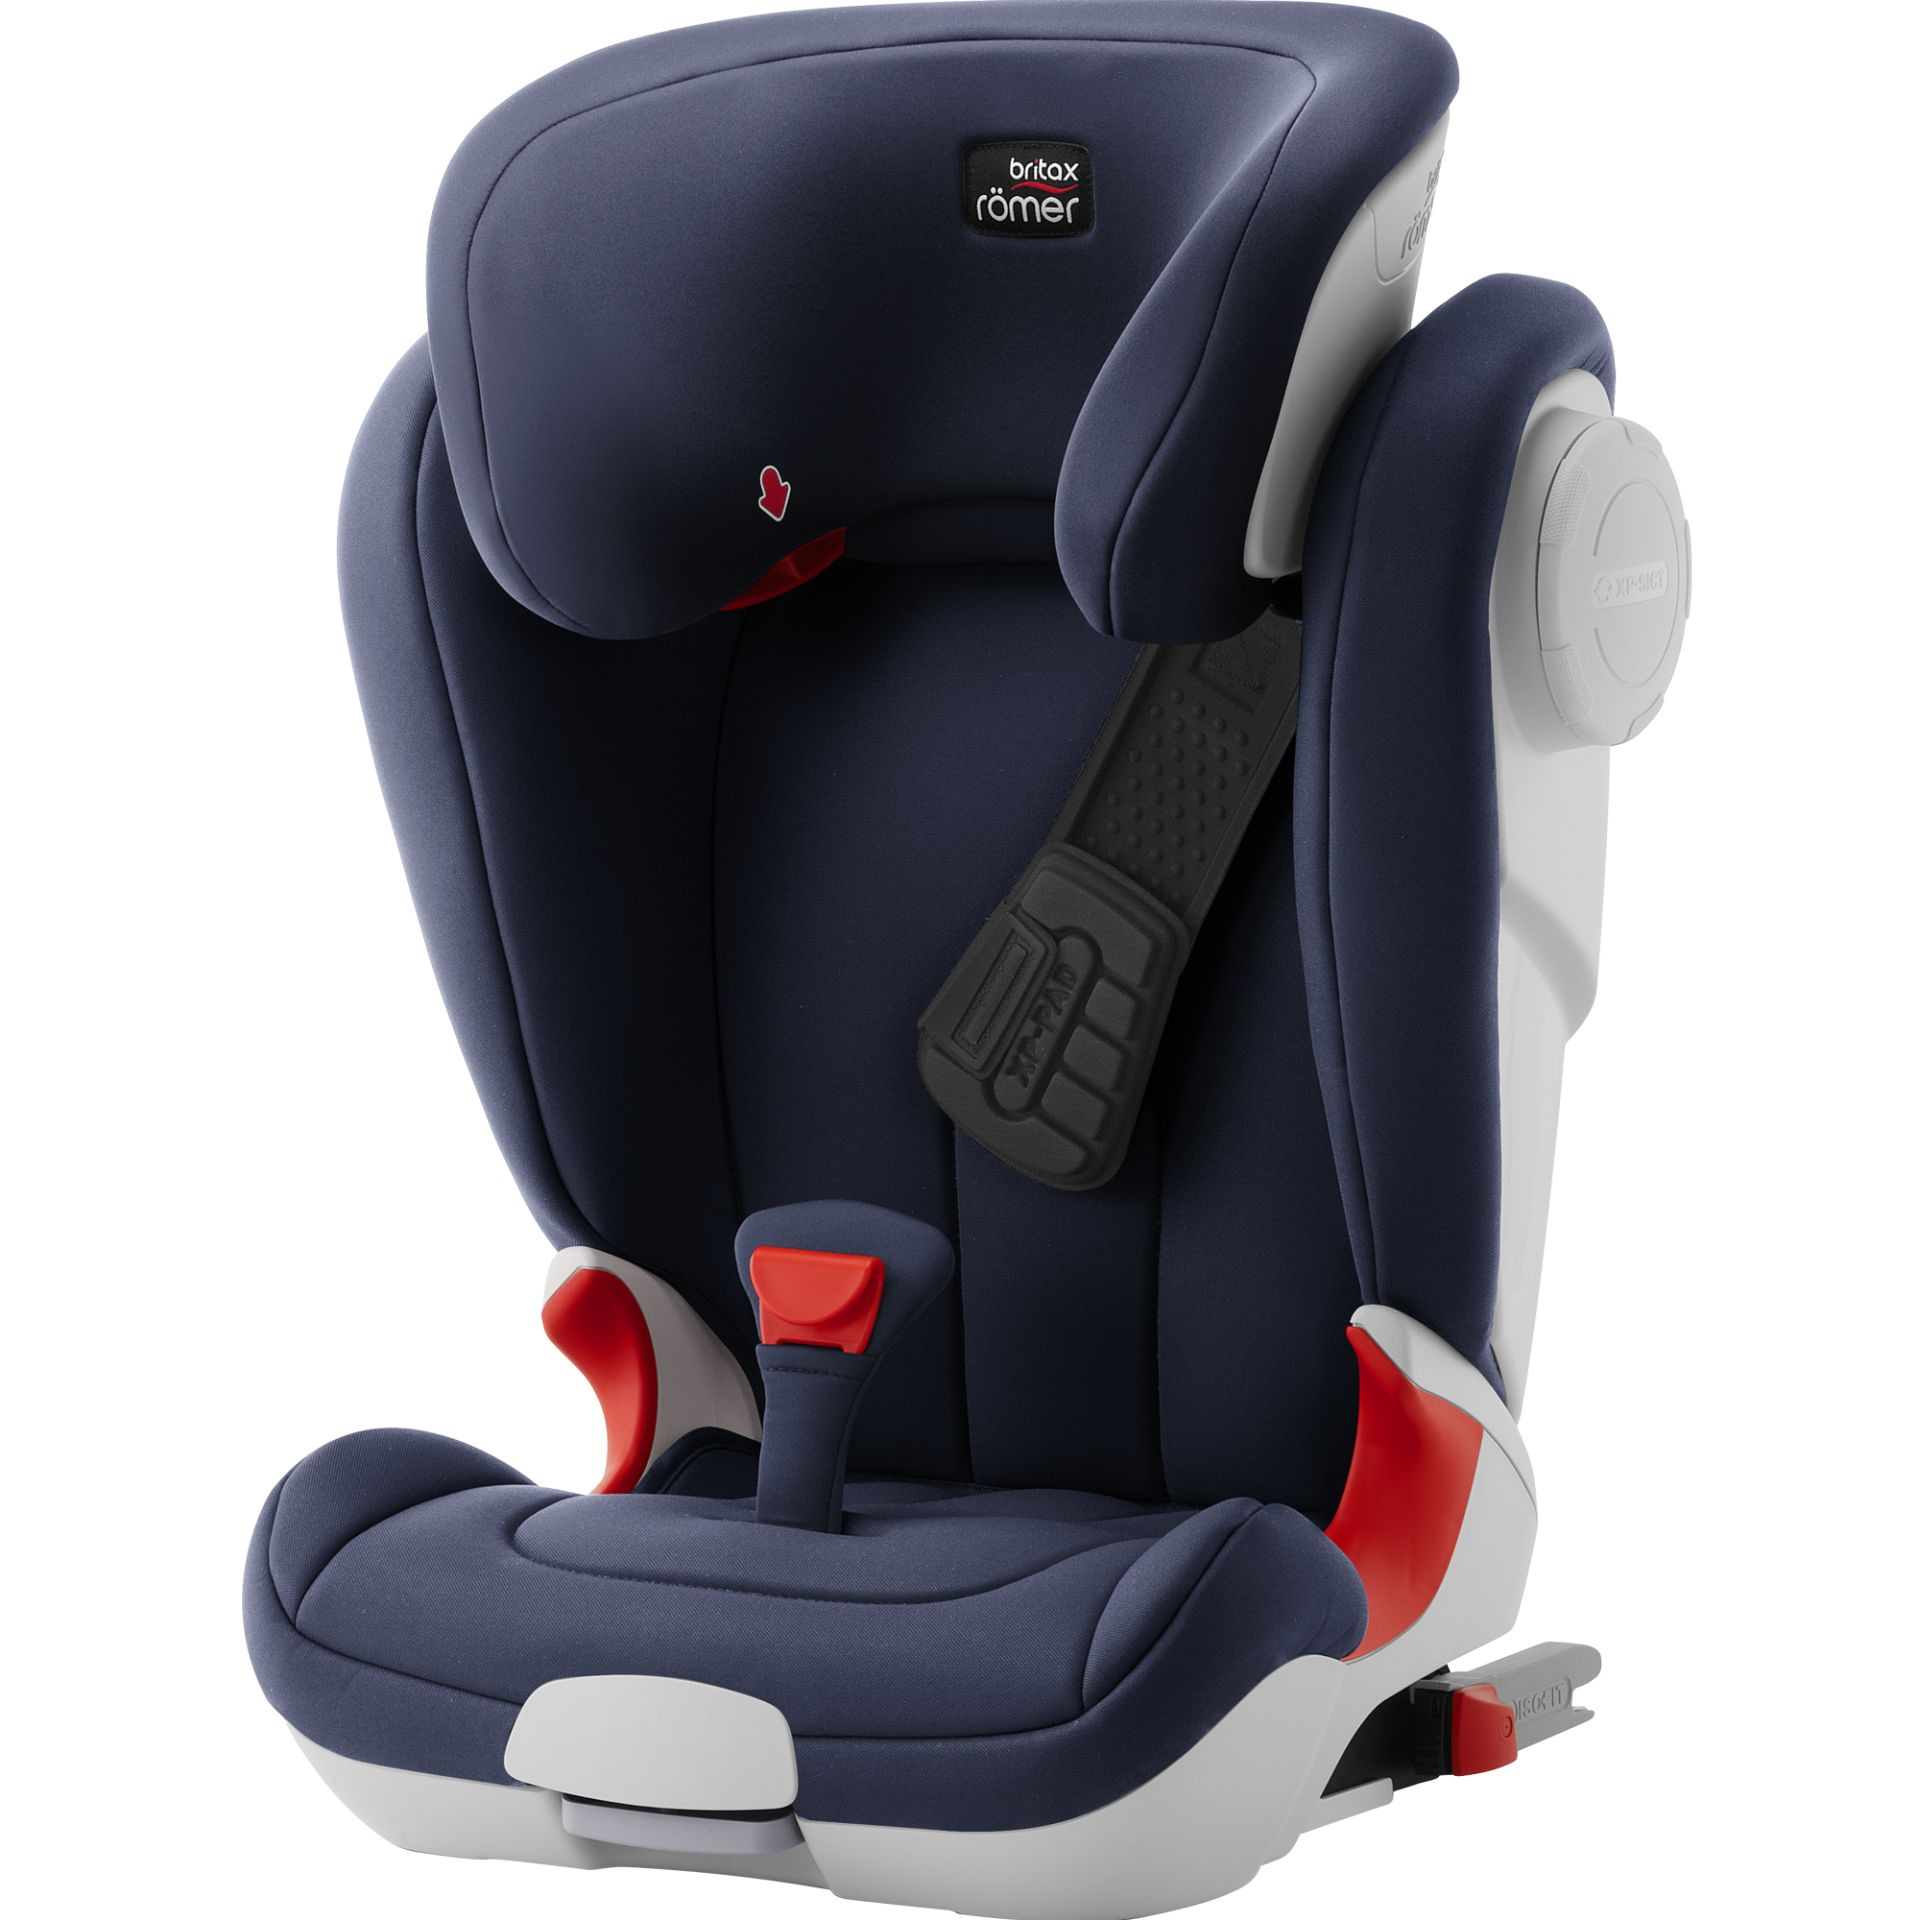 britax r mer safety seat kidfix ii xp sict buy at. Black Bedroom Furniture Sets. Home Design Ideas